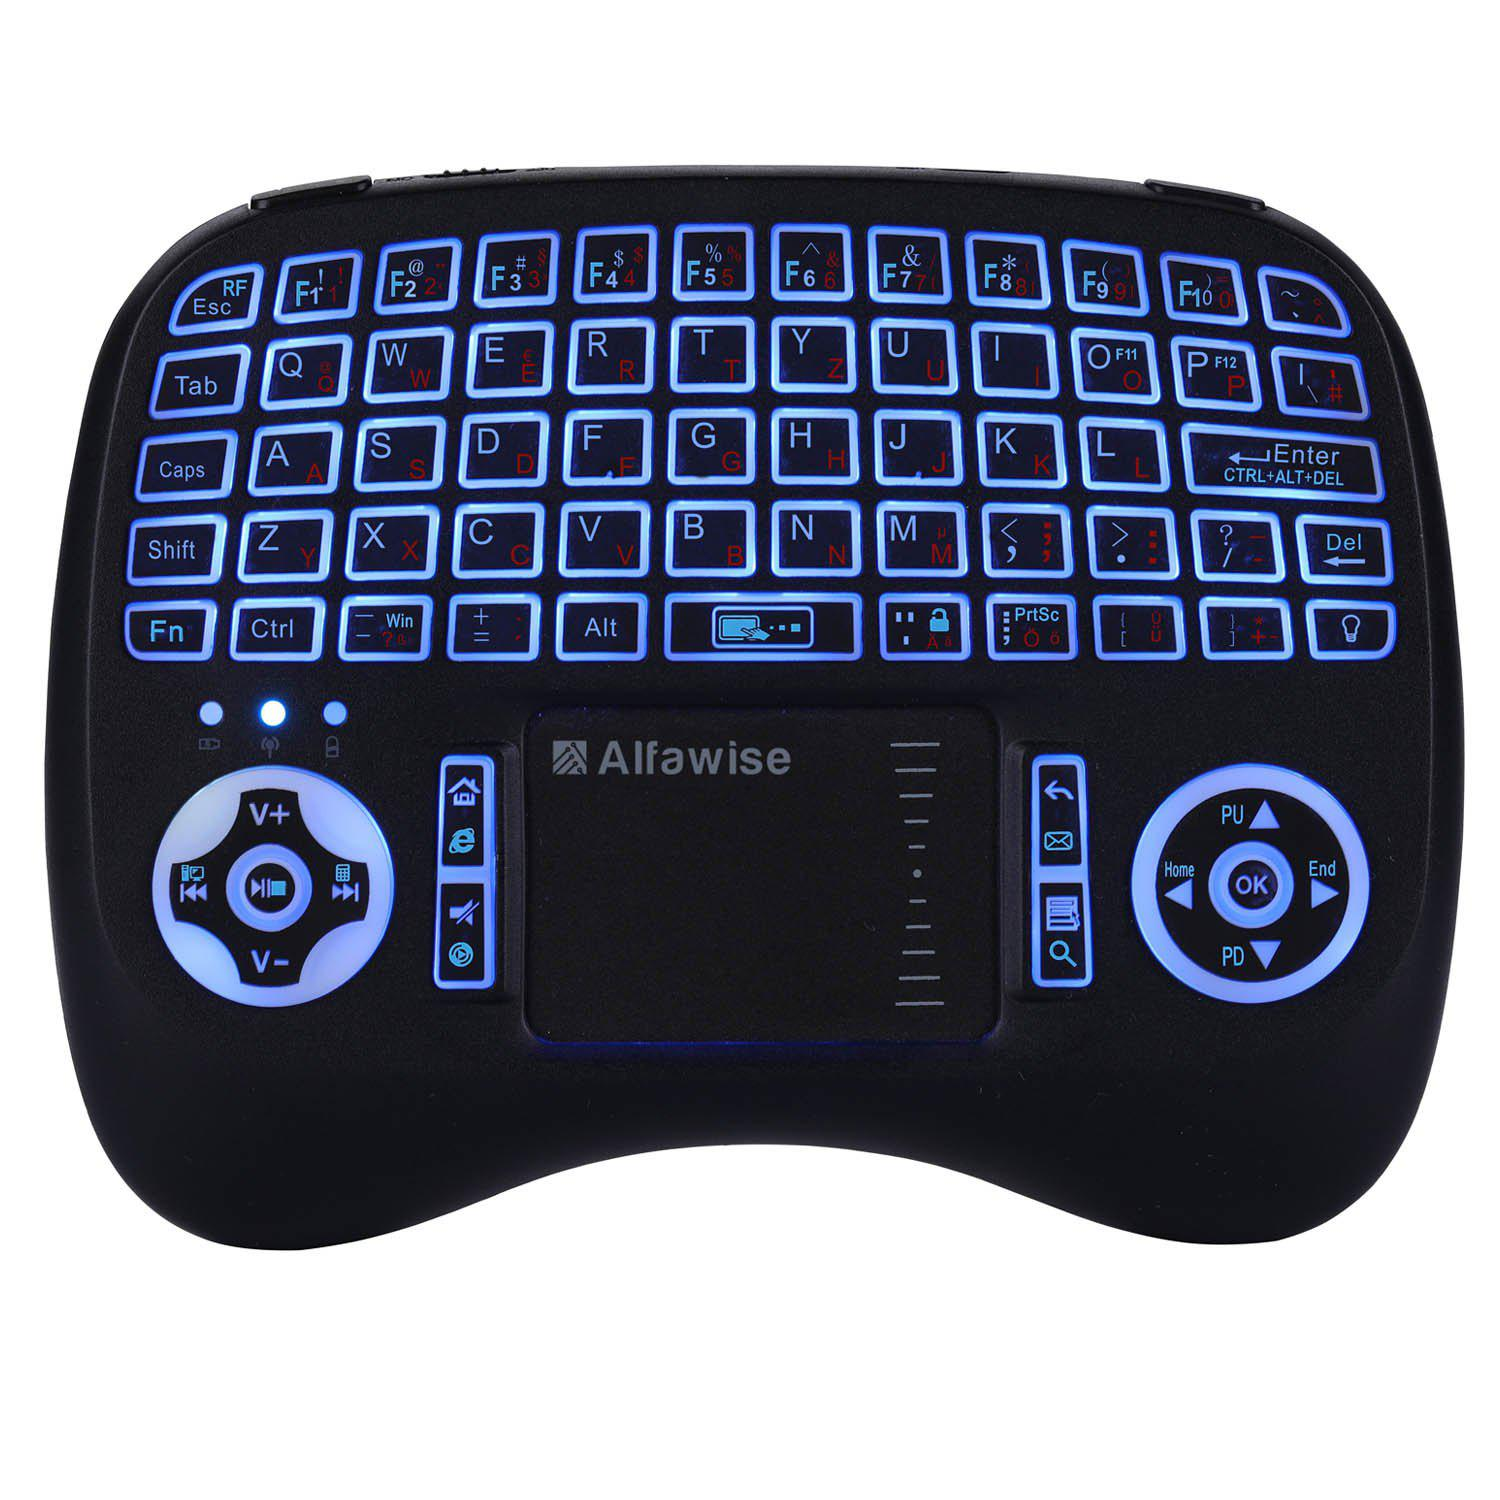 Shops Alfawise KP - 810 - 21T - RGB 2.4G Wireless Keyboard with Touchpad Mouse